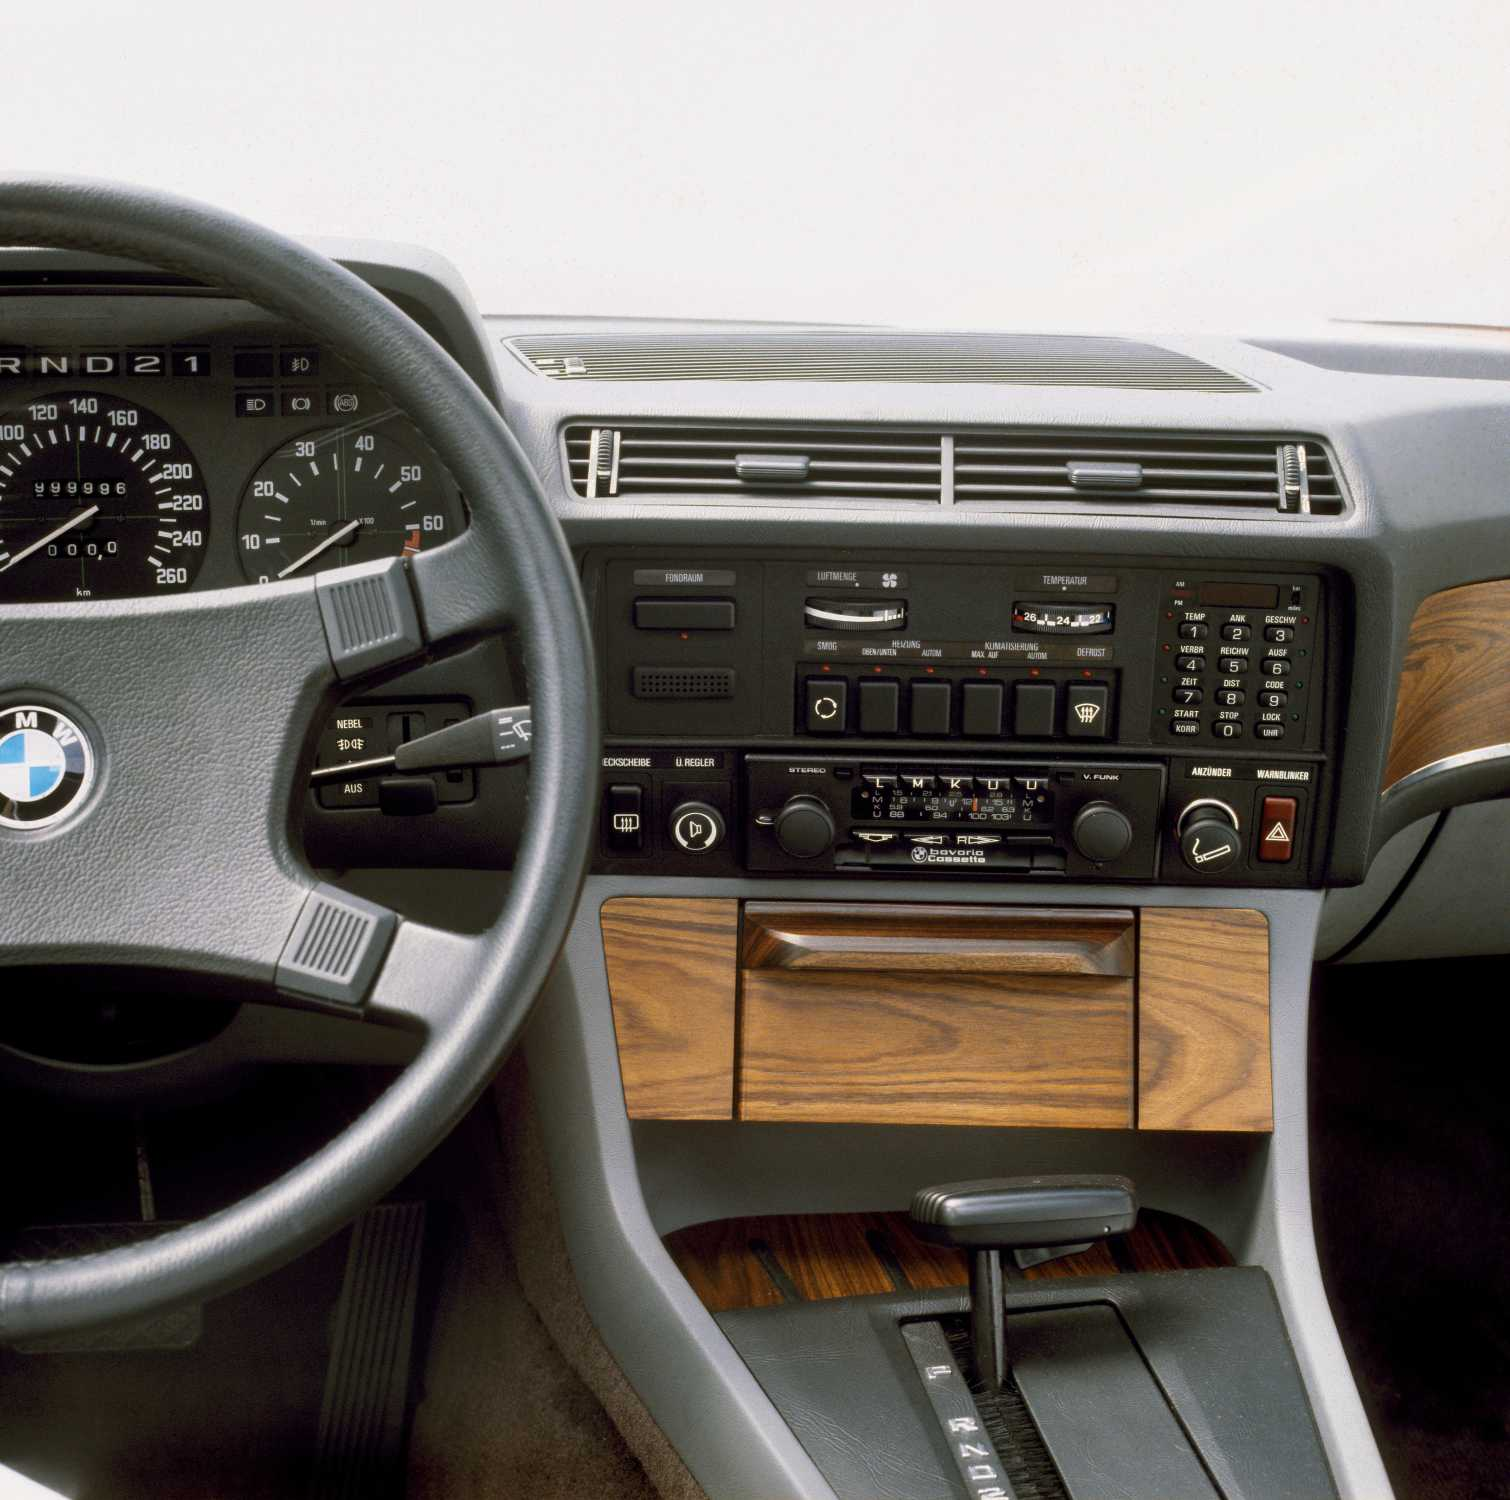 Bmw 745i On Board Computer And Air Conditioning First